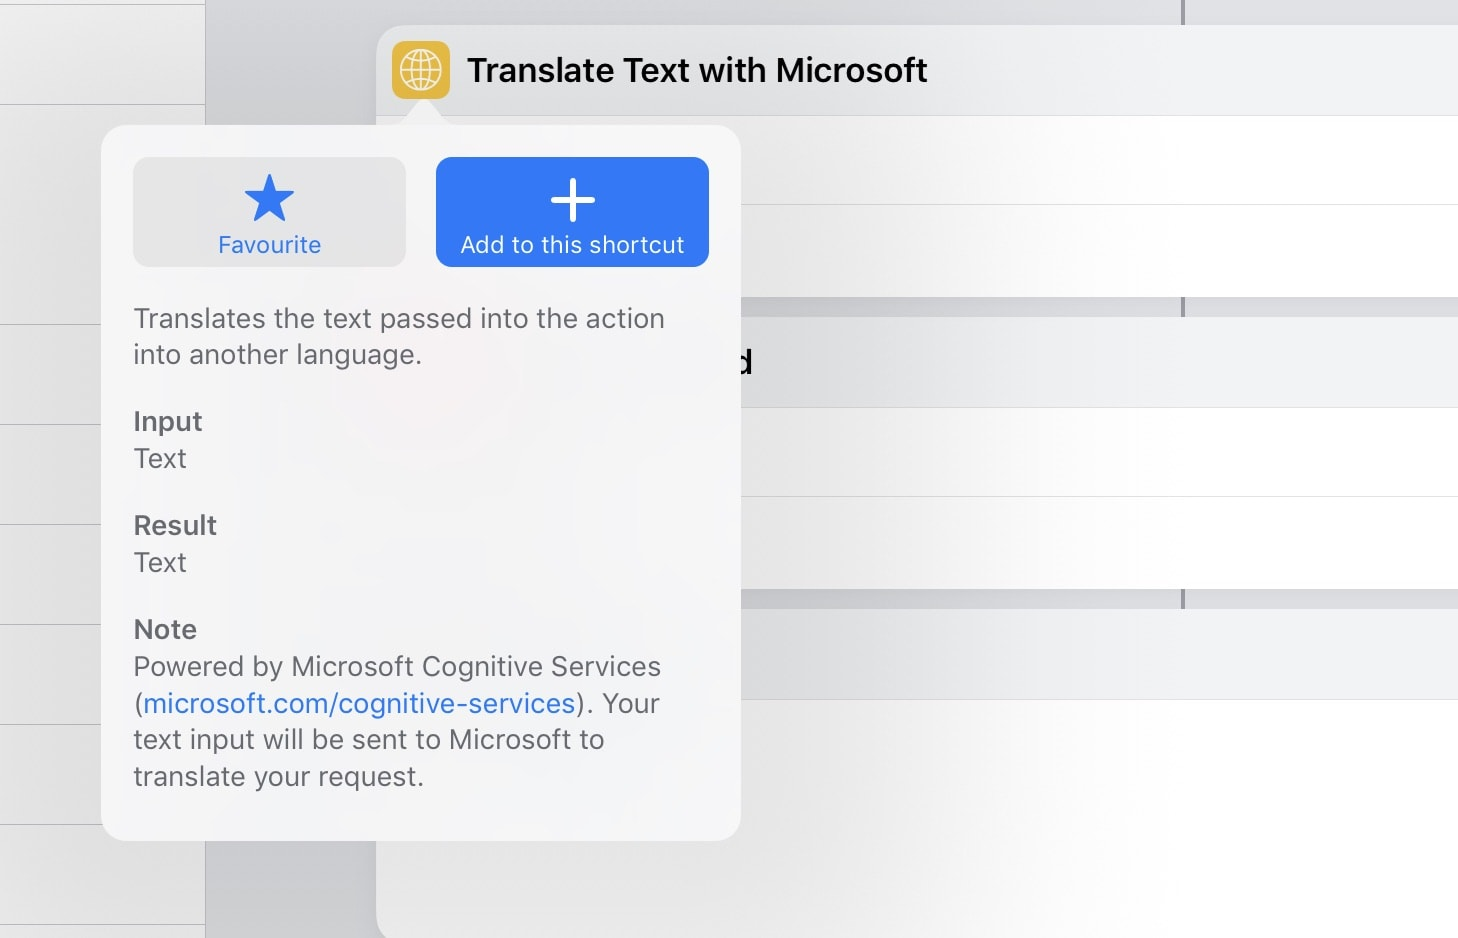 Translation is powered by Microsoft.